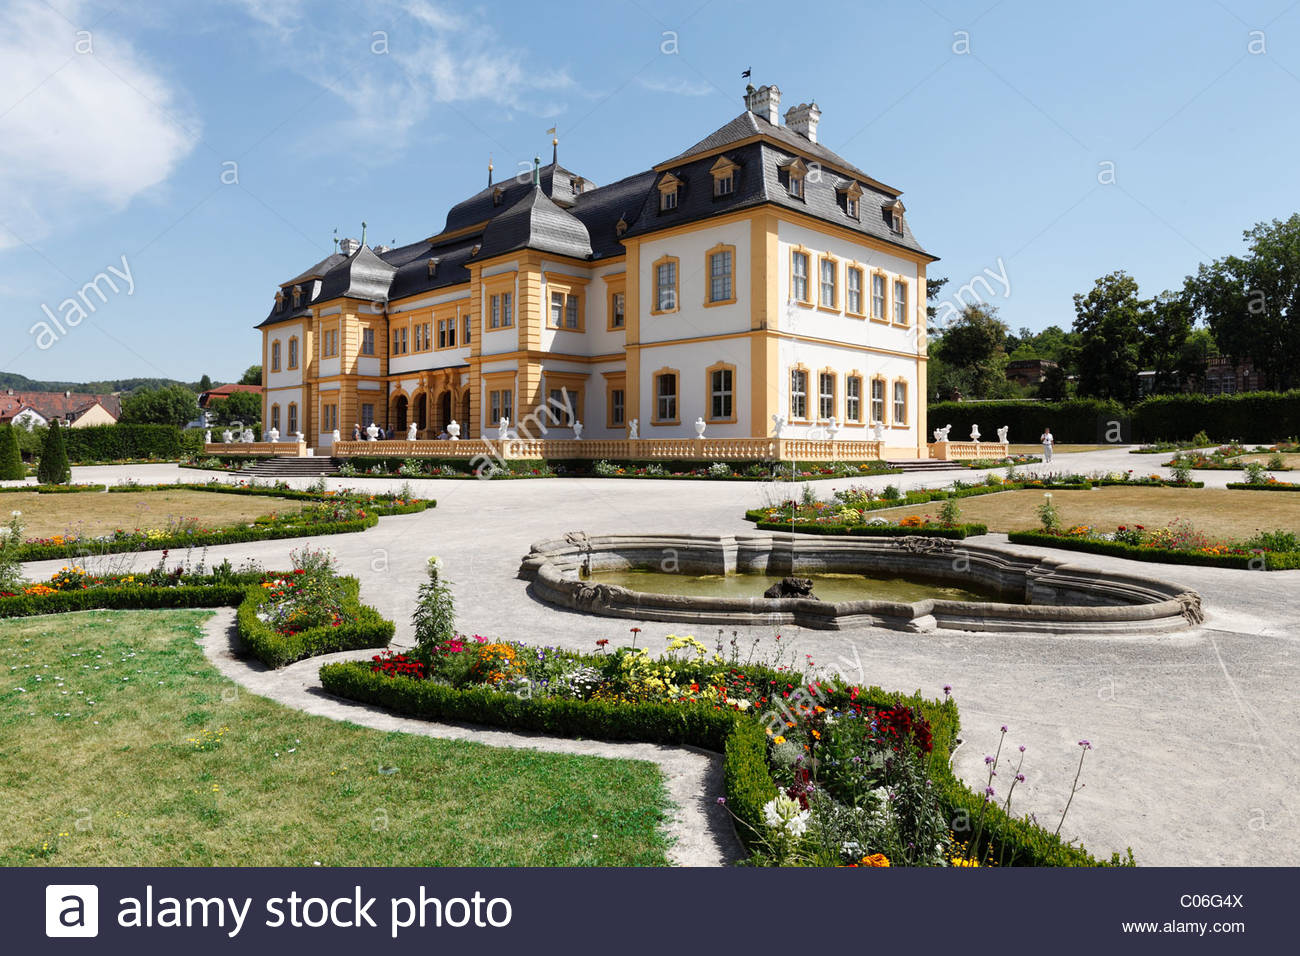 Schloss Ehrenburg Franconia and the German Danube, Glienicke Castle Stock Photos & Glienicke Castle Stock Images - Alamy